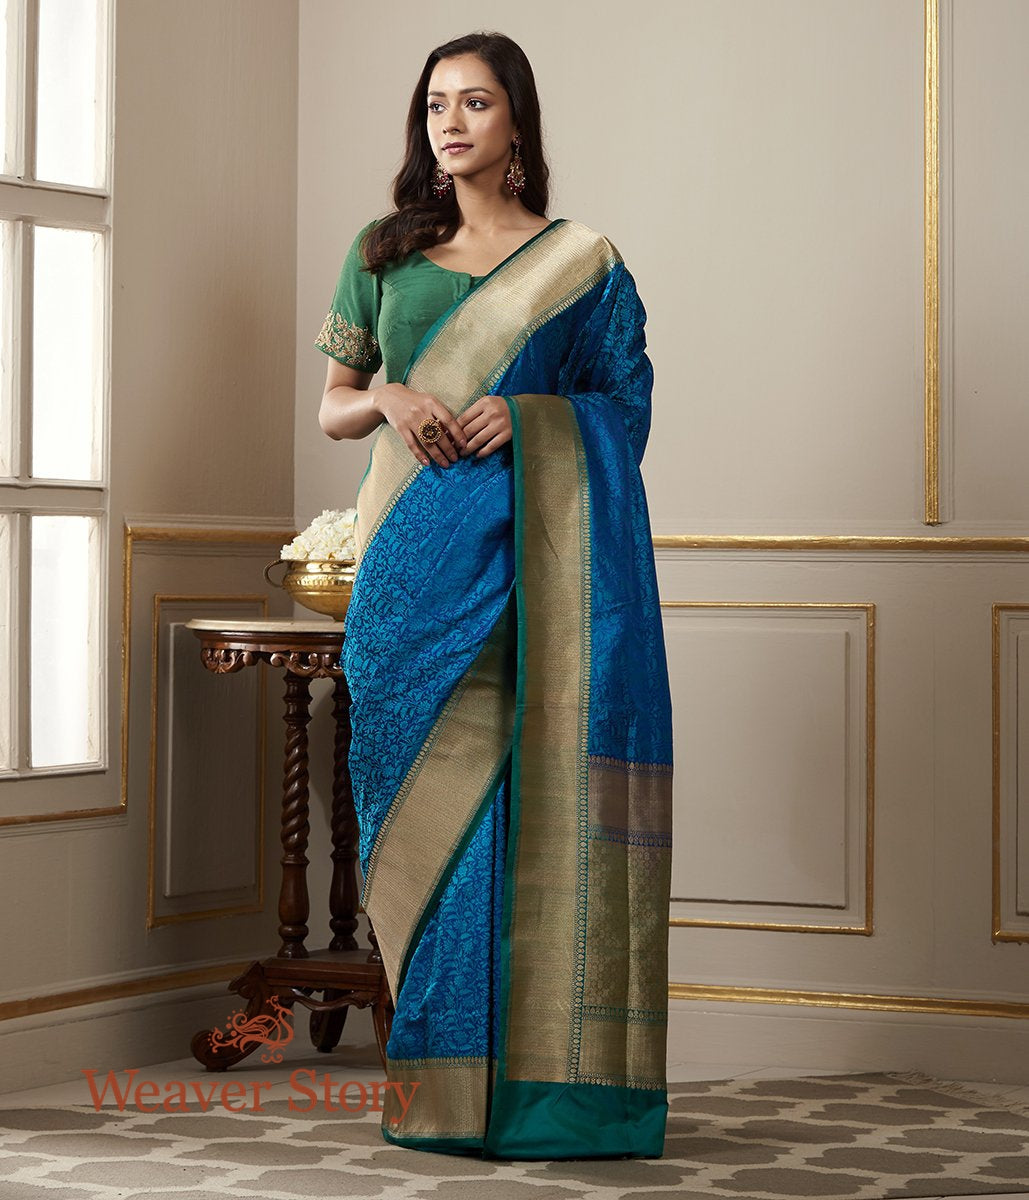 Handwoven Blue Banarasi Tanchoi Saree with Gold Zari Border